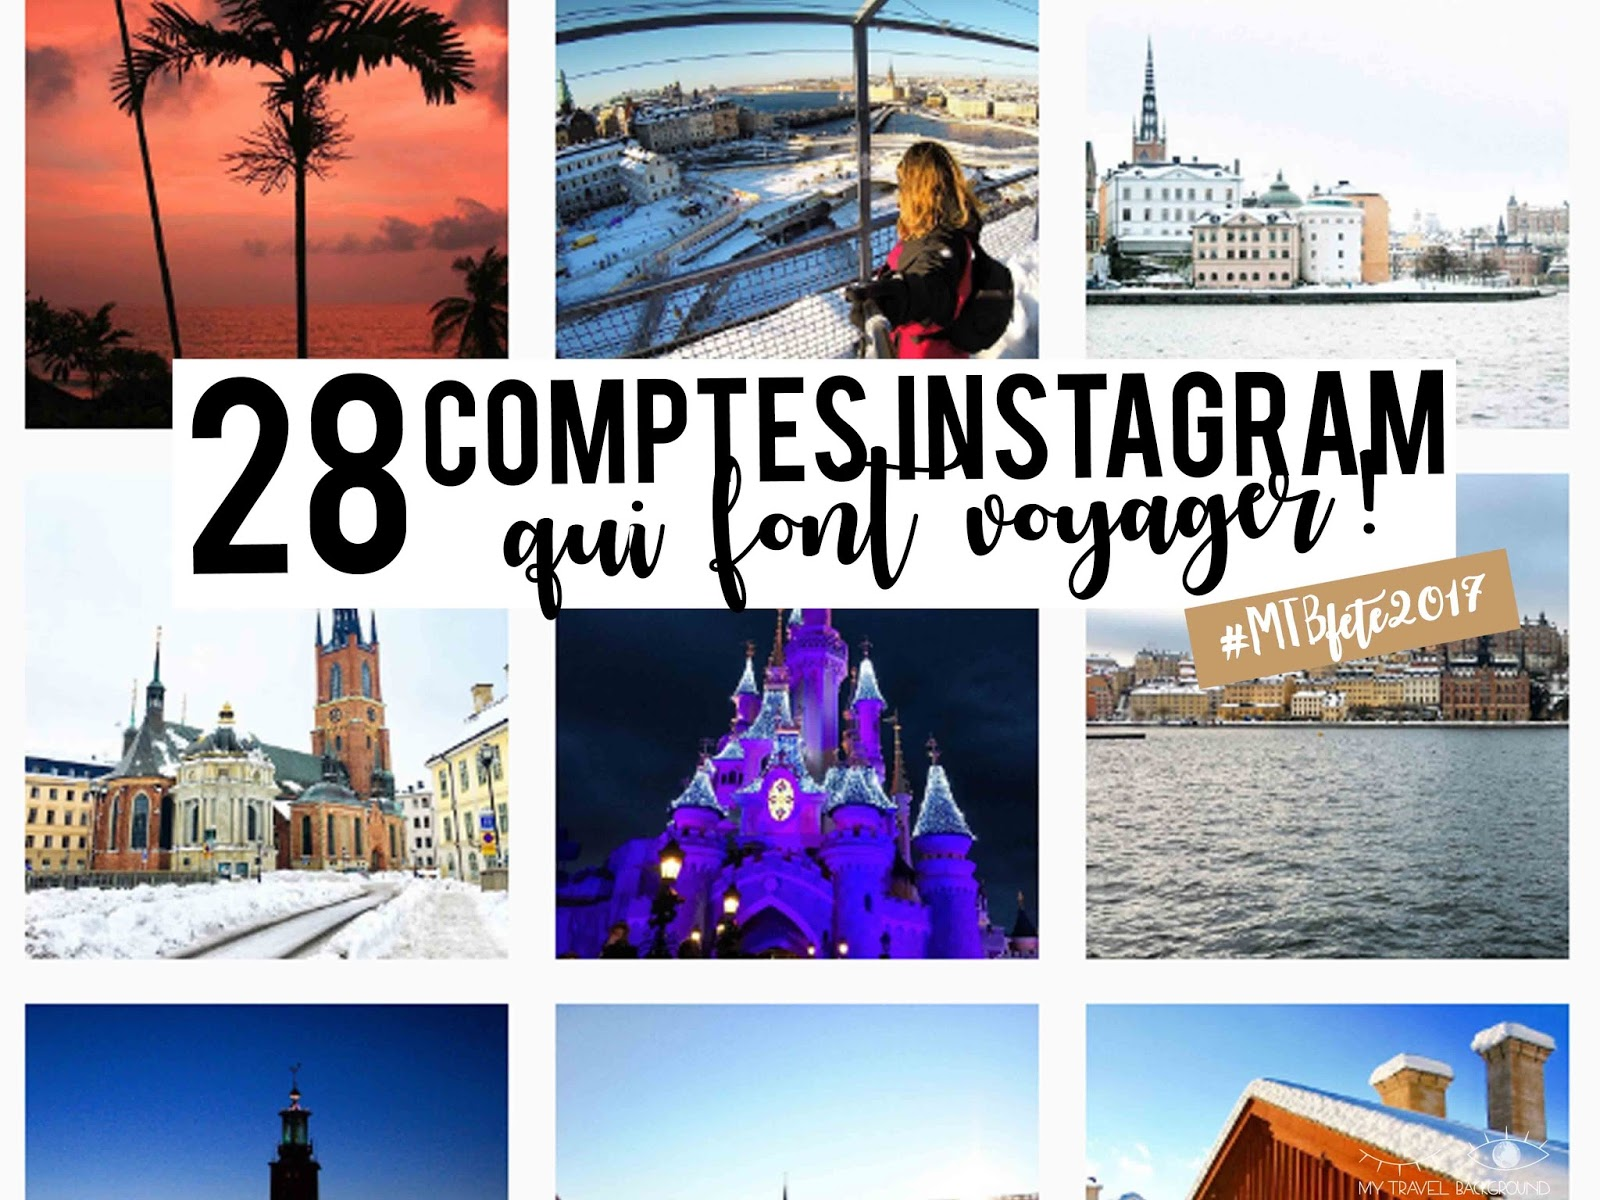 My Travel Background : 28 comptes Instagram qui donnent envie de voyager